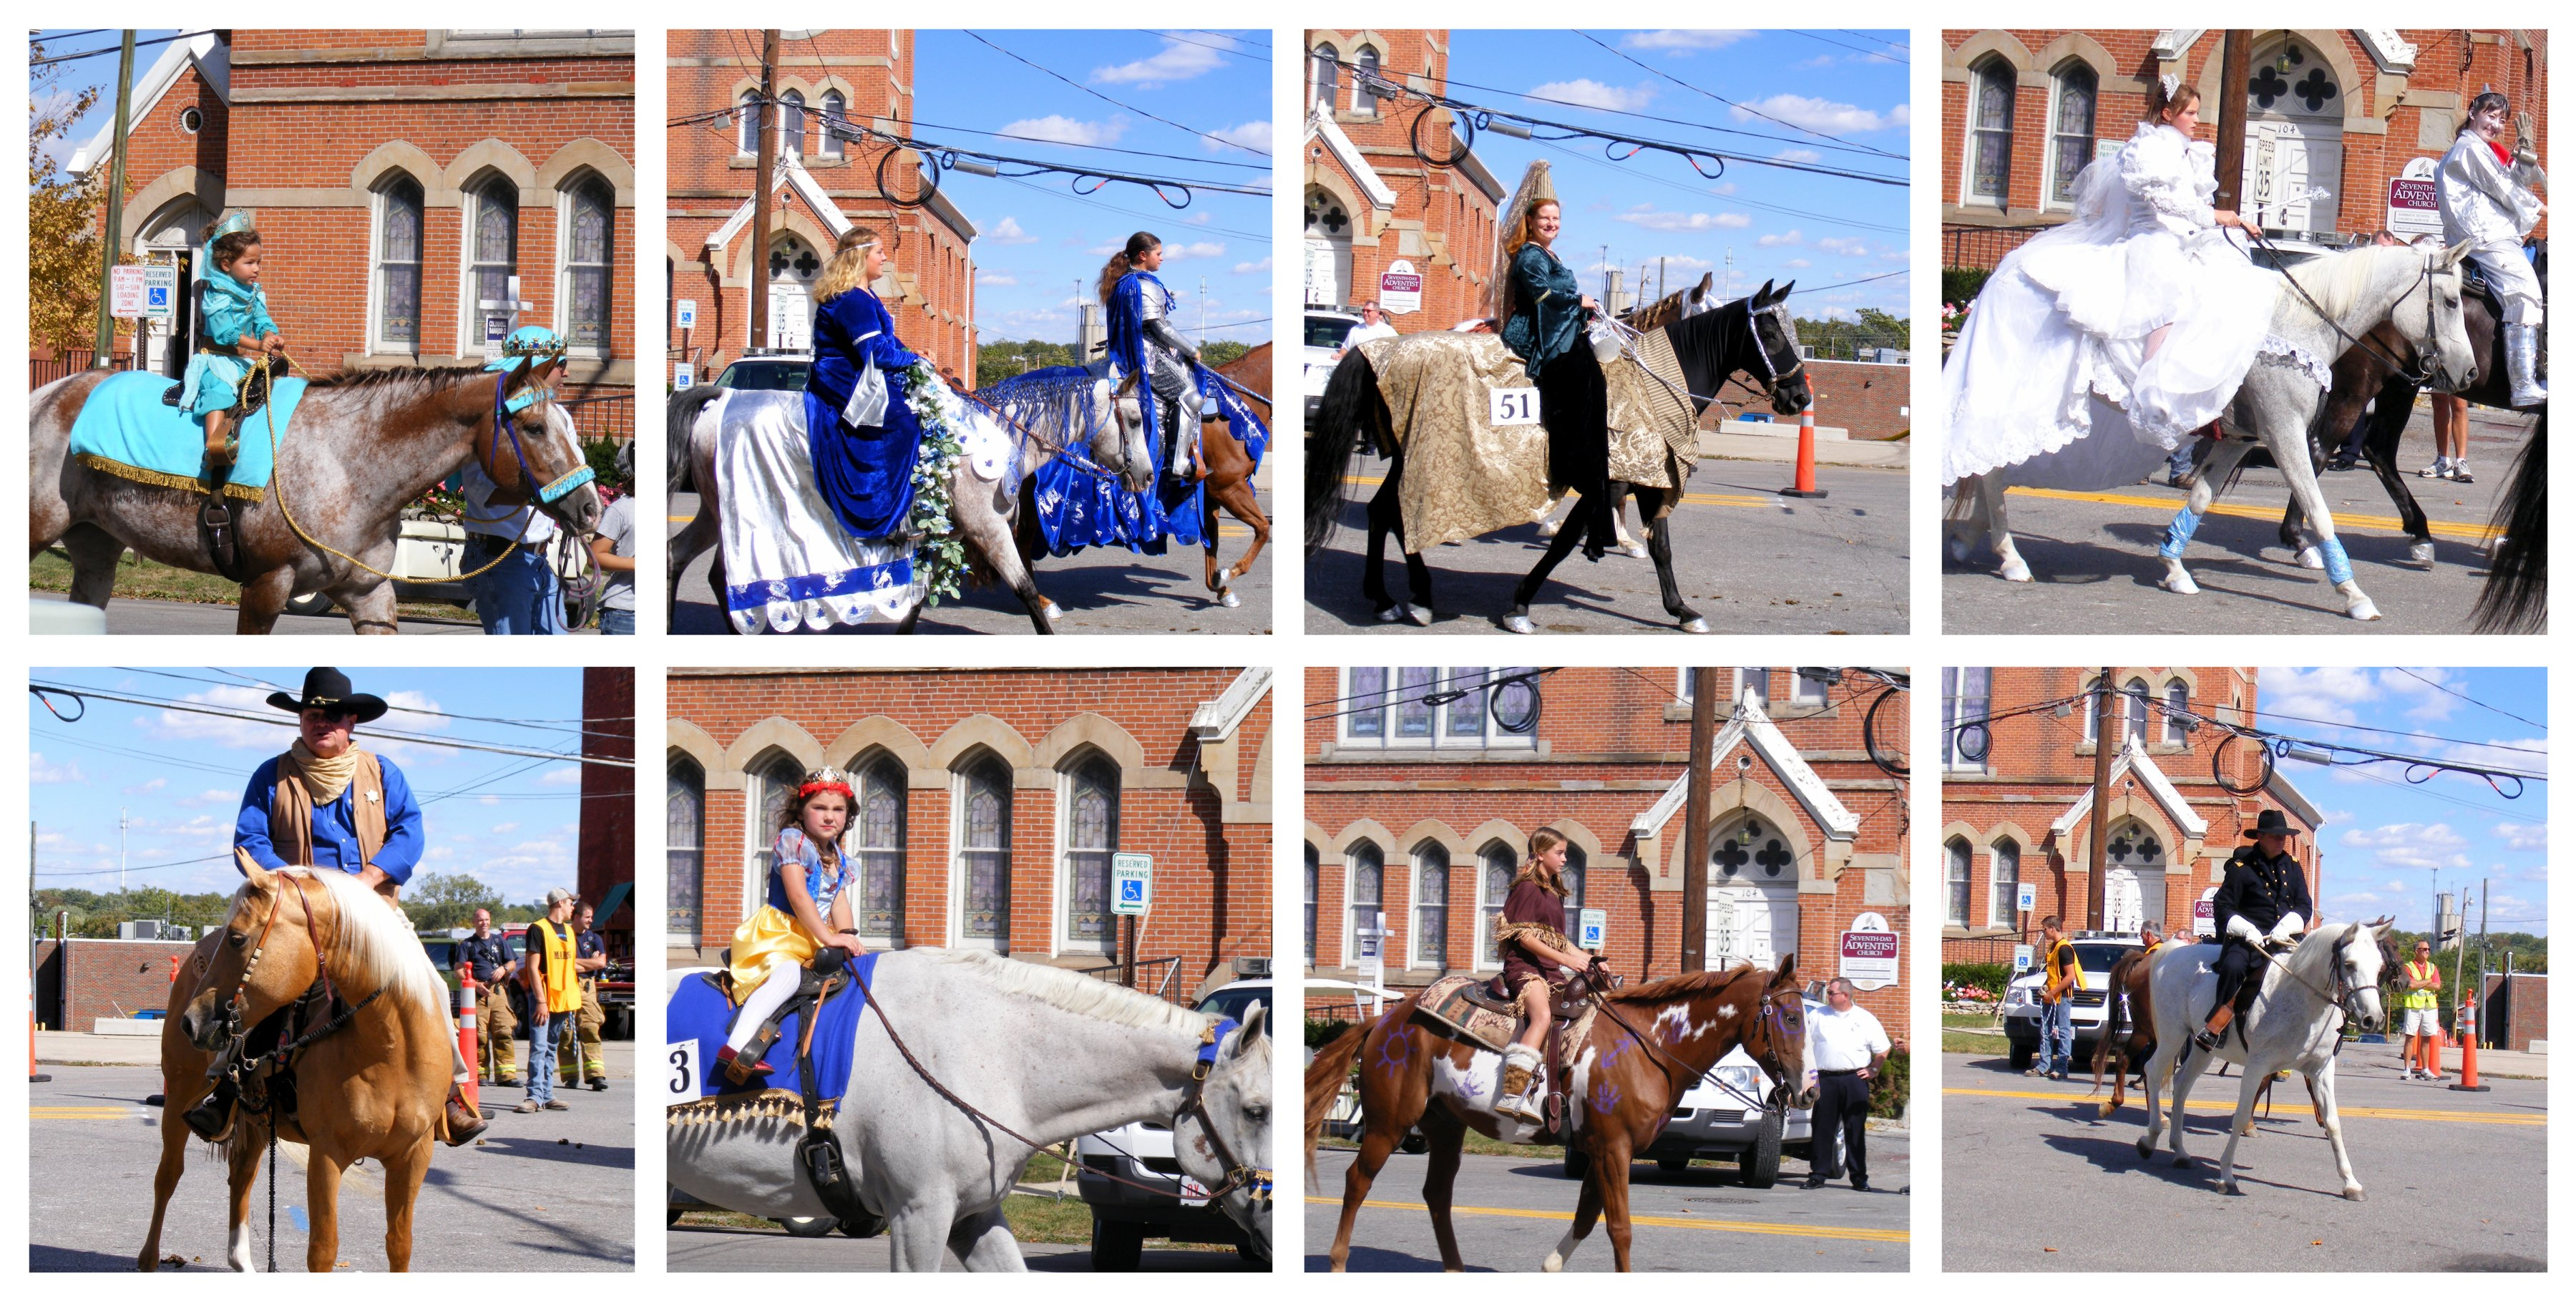 Horse costume collage